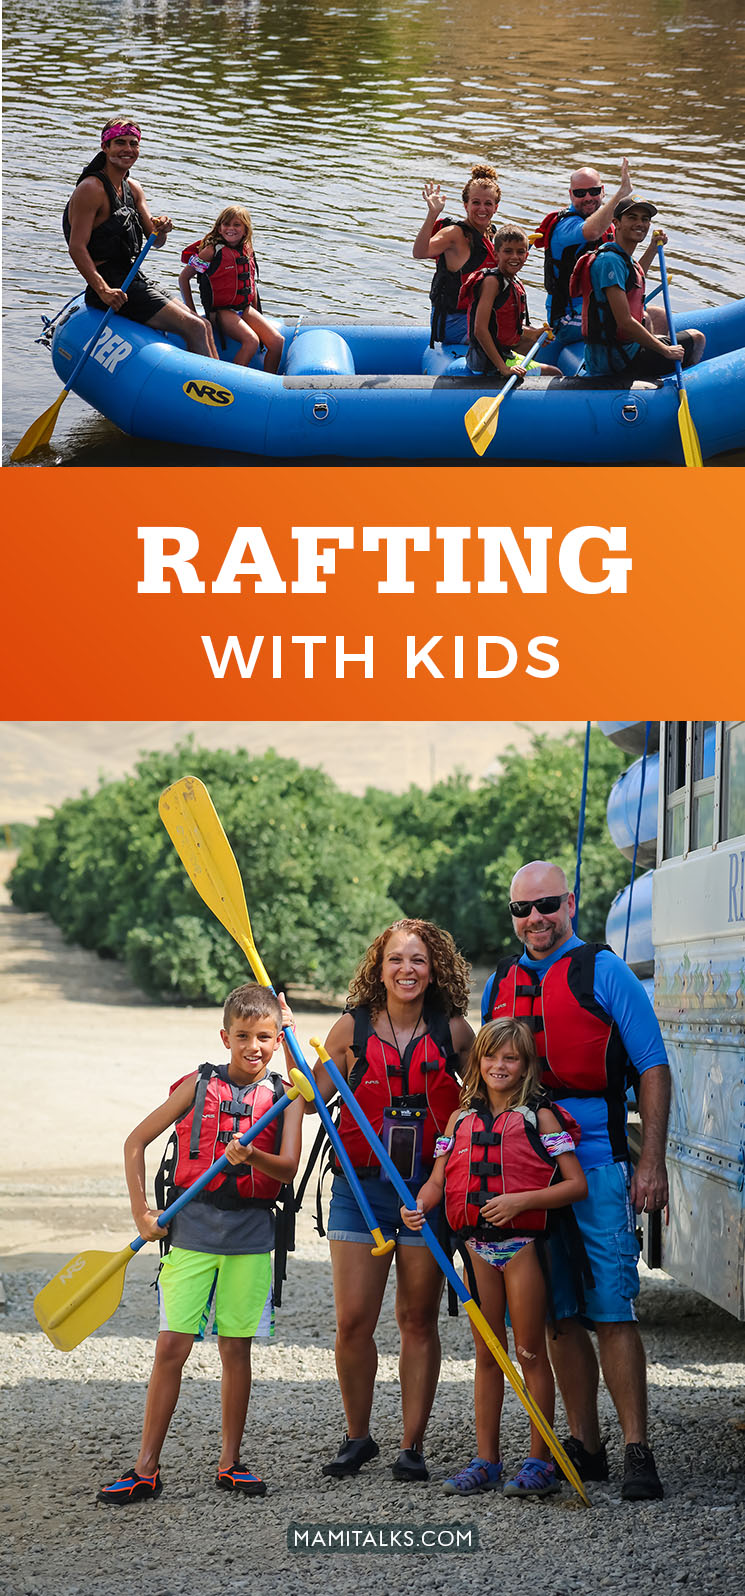 Rafting with kids -MamiTalks.com